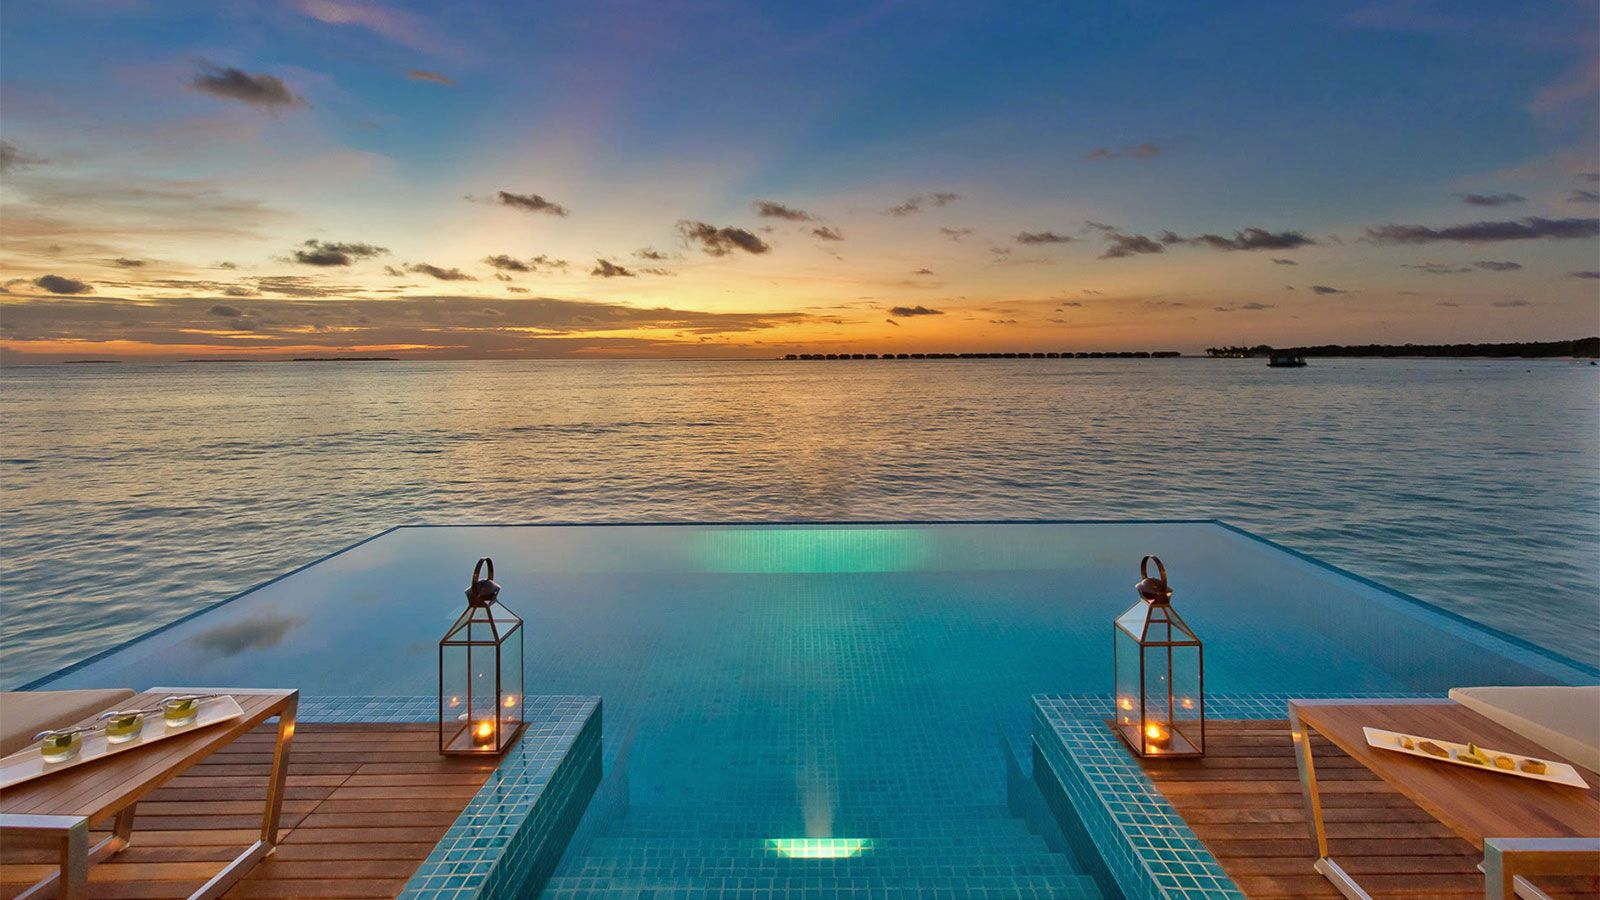 Maldives images hideaway luxury maldives resort image for Pool pictures